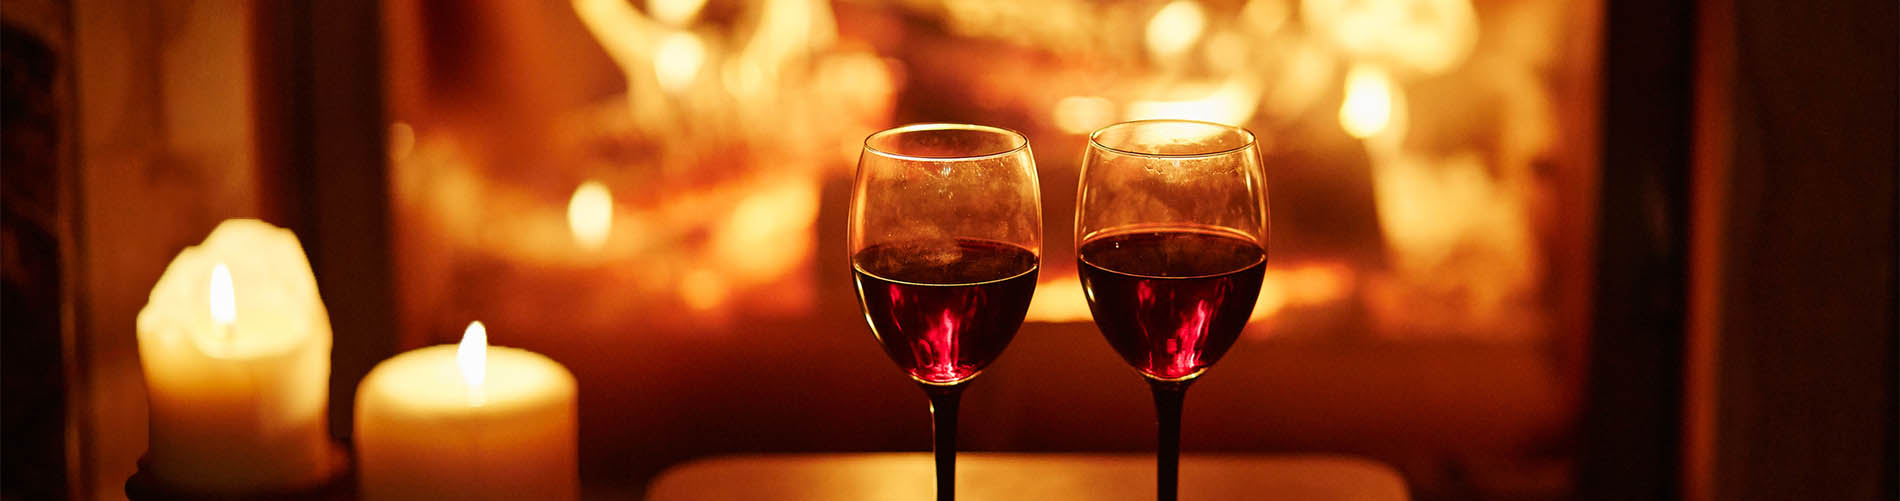 Two glasses of red wine near fireplace with many candles.